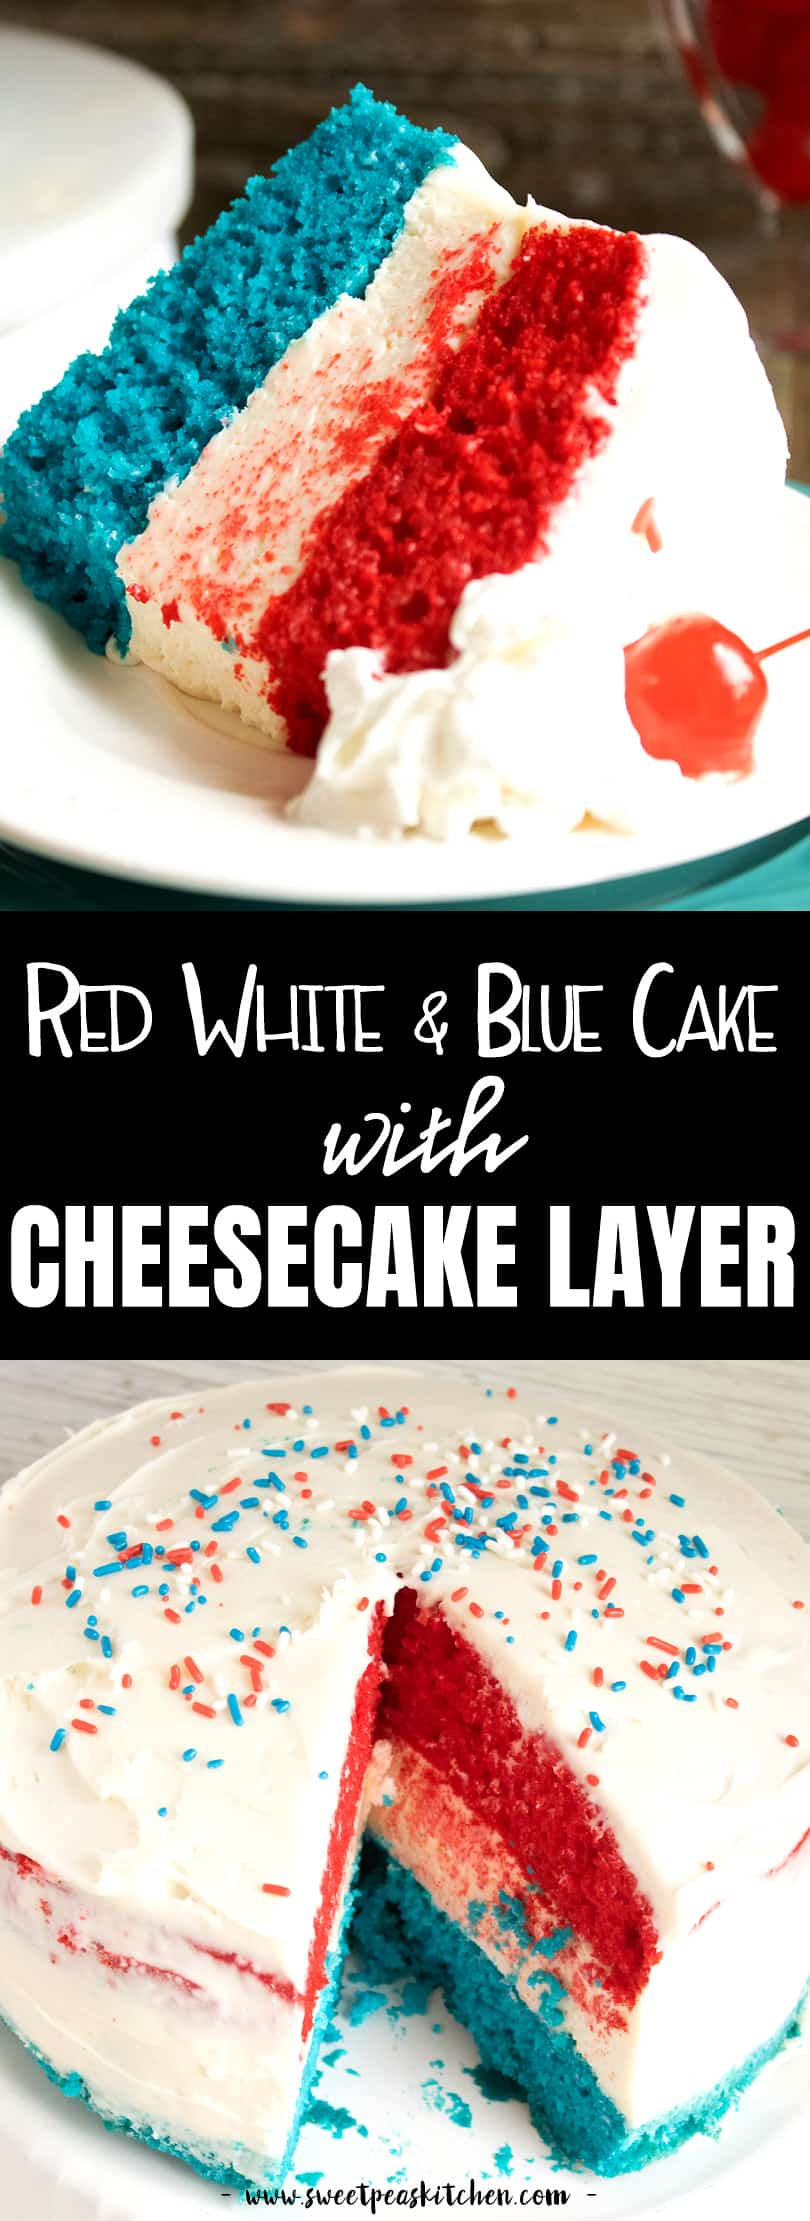 Red White and Blue Cake with Cheesecake Layer